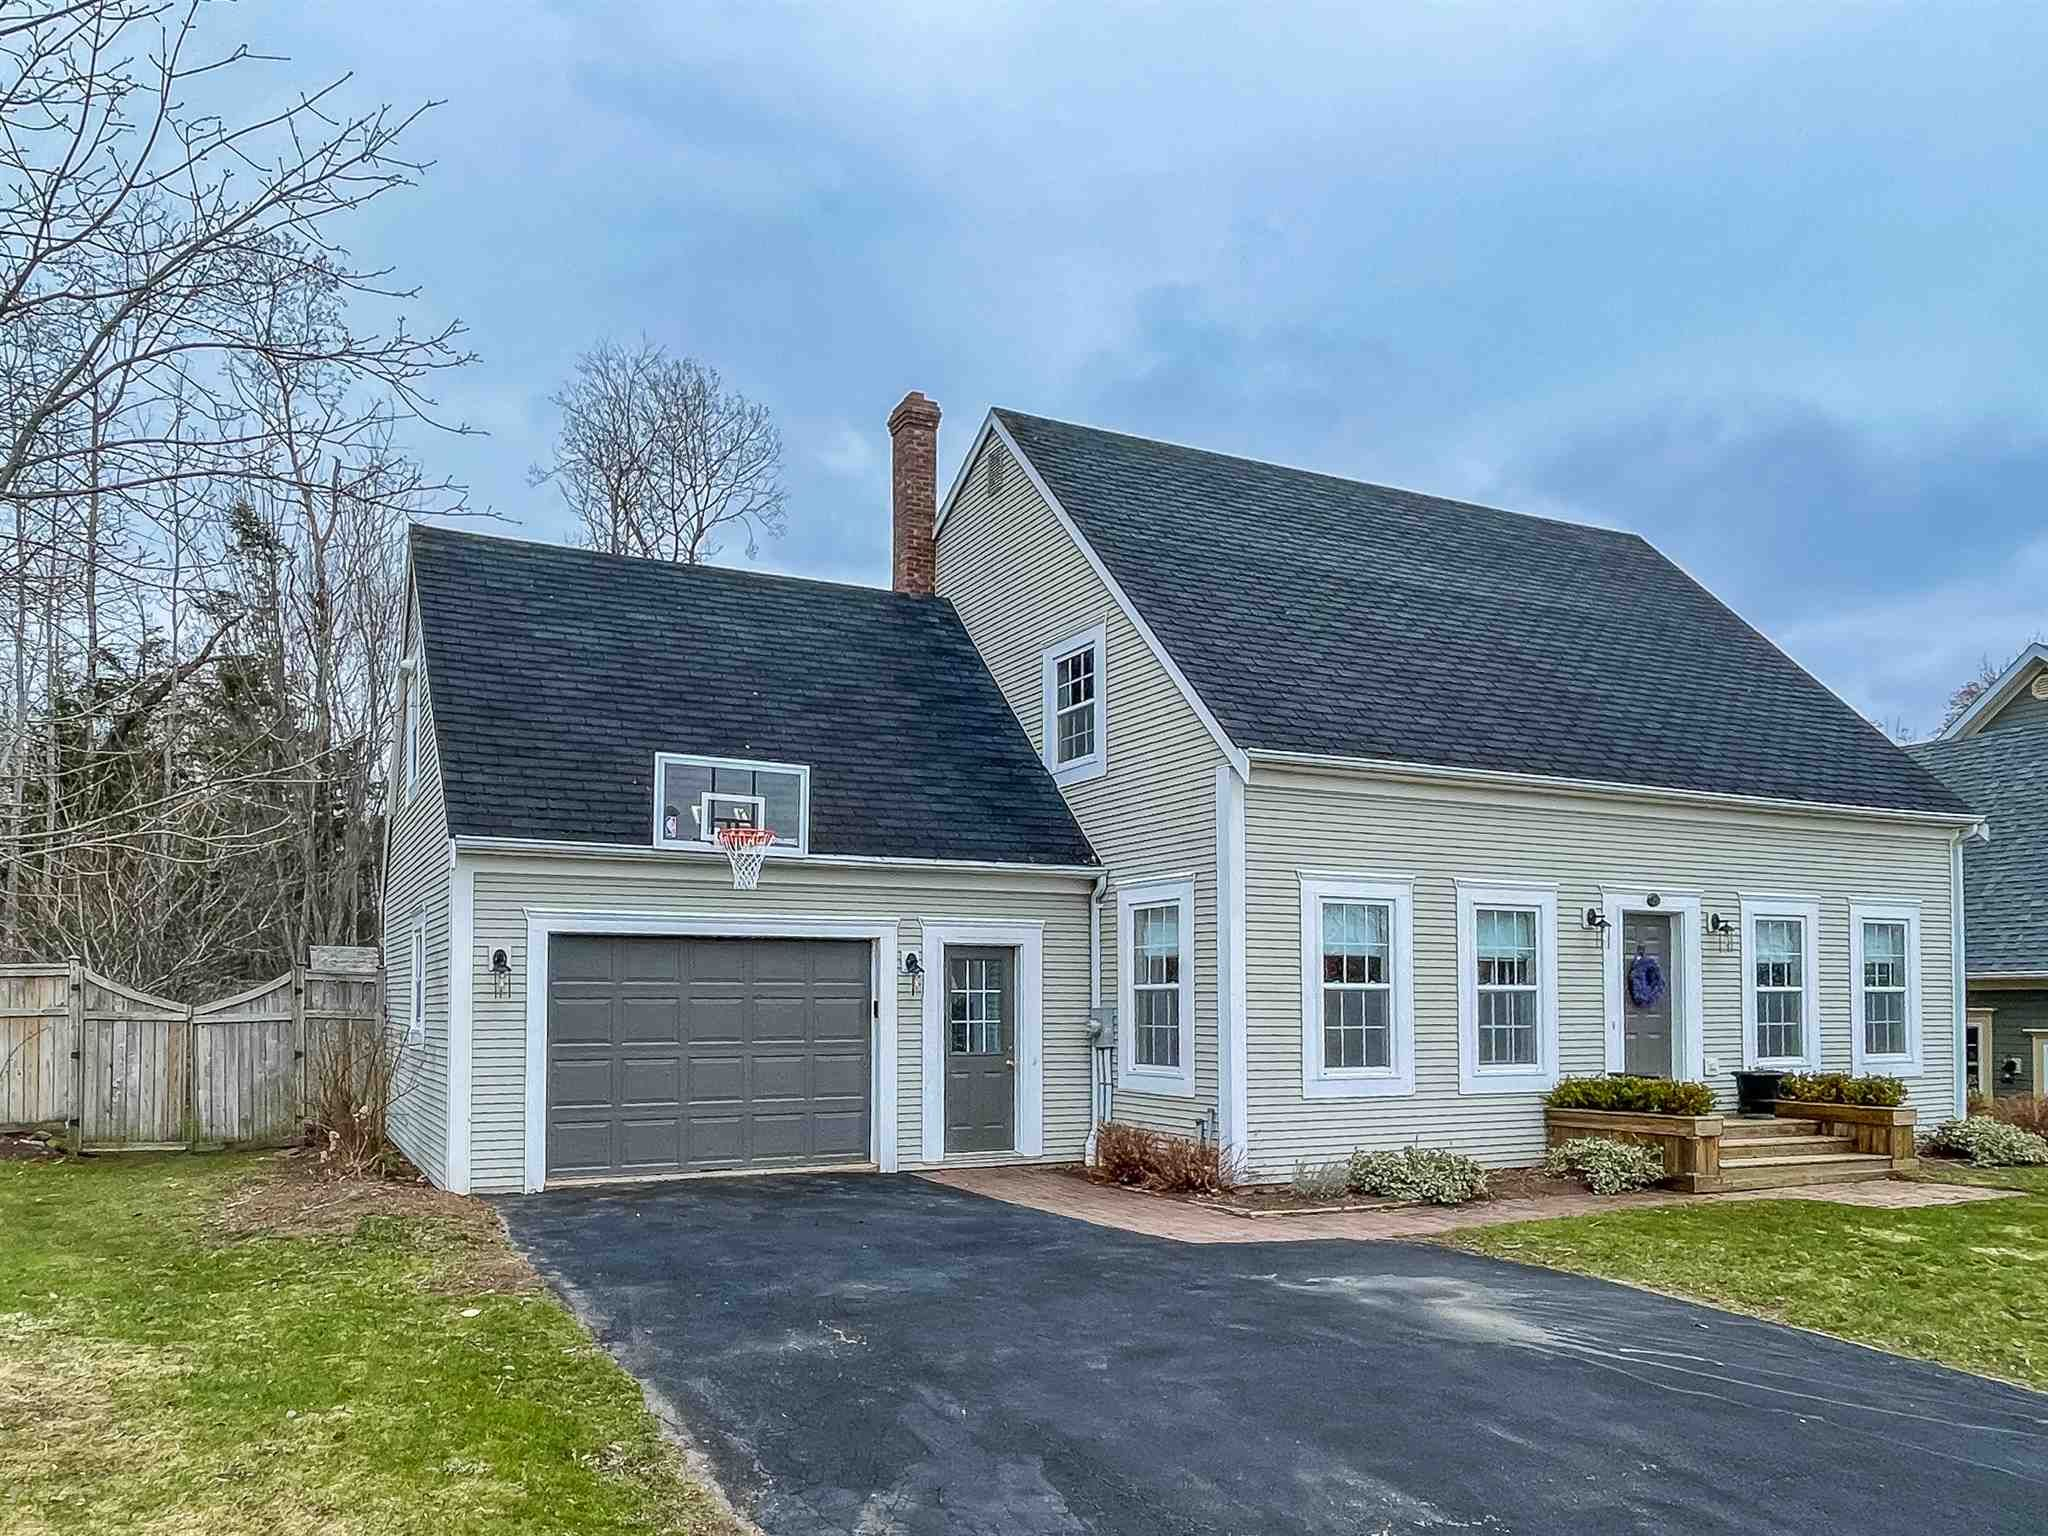 Main Photo: 25 Dalhousie Avenue in Kentville: 404-Kings County Residential for sale (Annapolis Valley)  : MLS®# 202108544